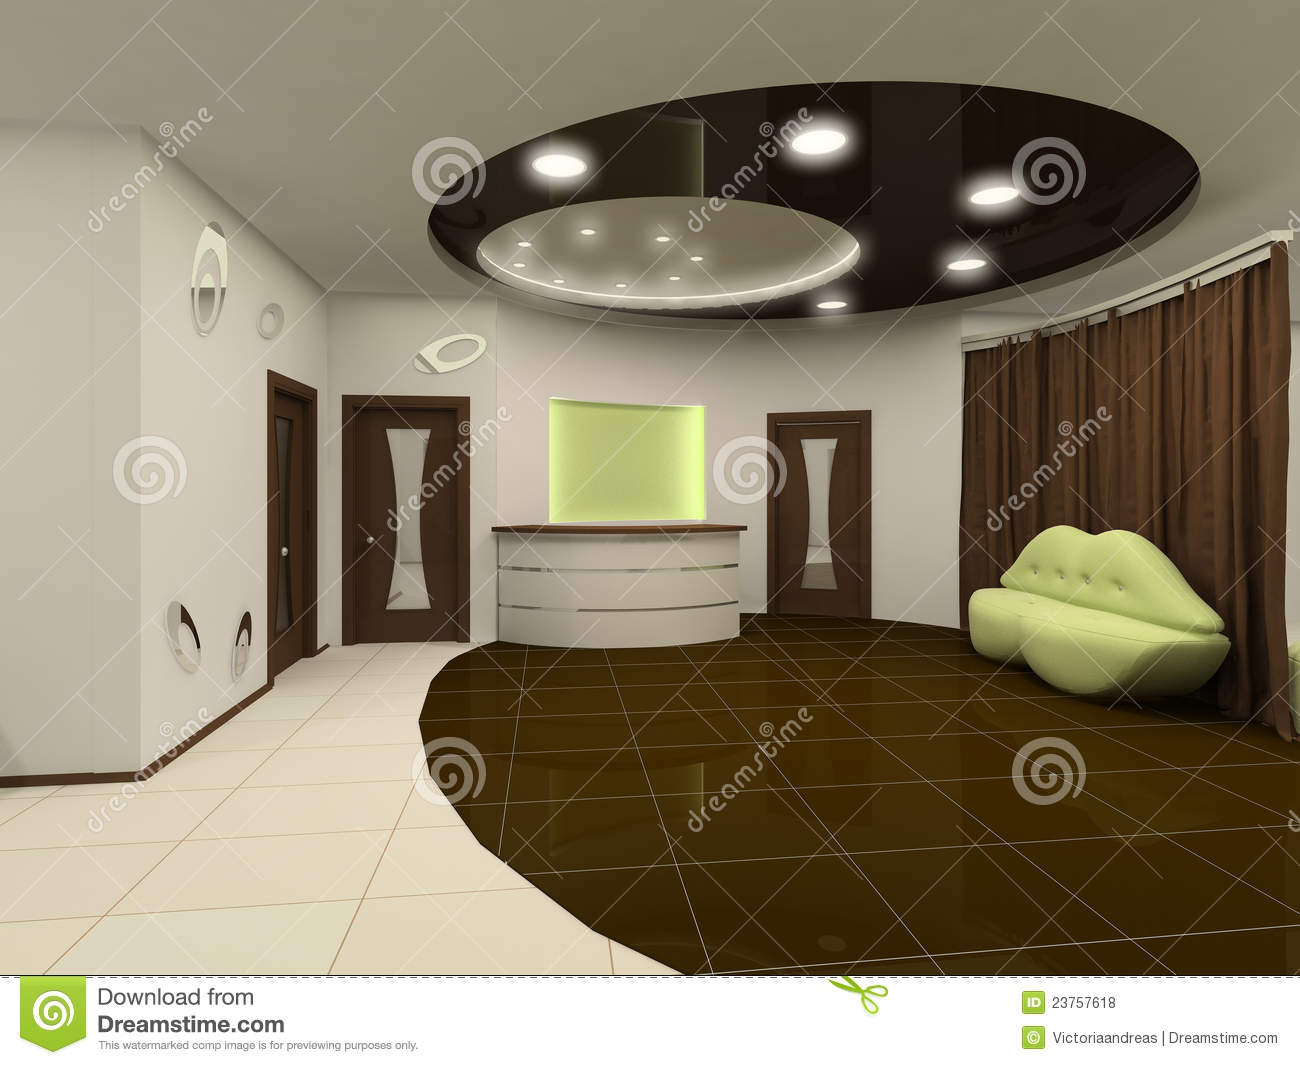 Reception interior design hall with furniture stock for Interior design furniture